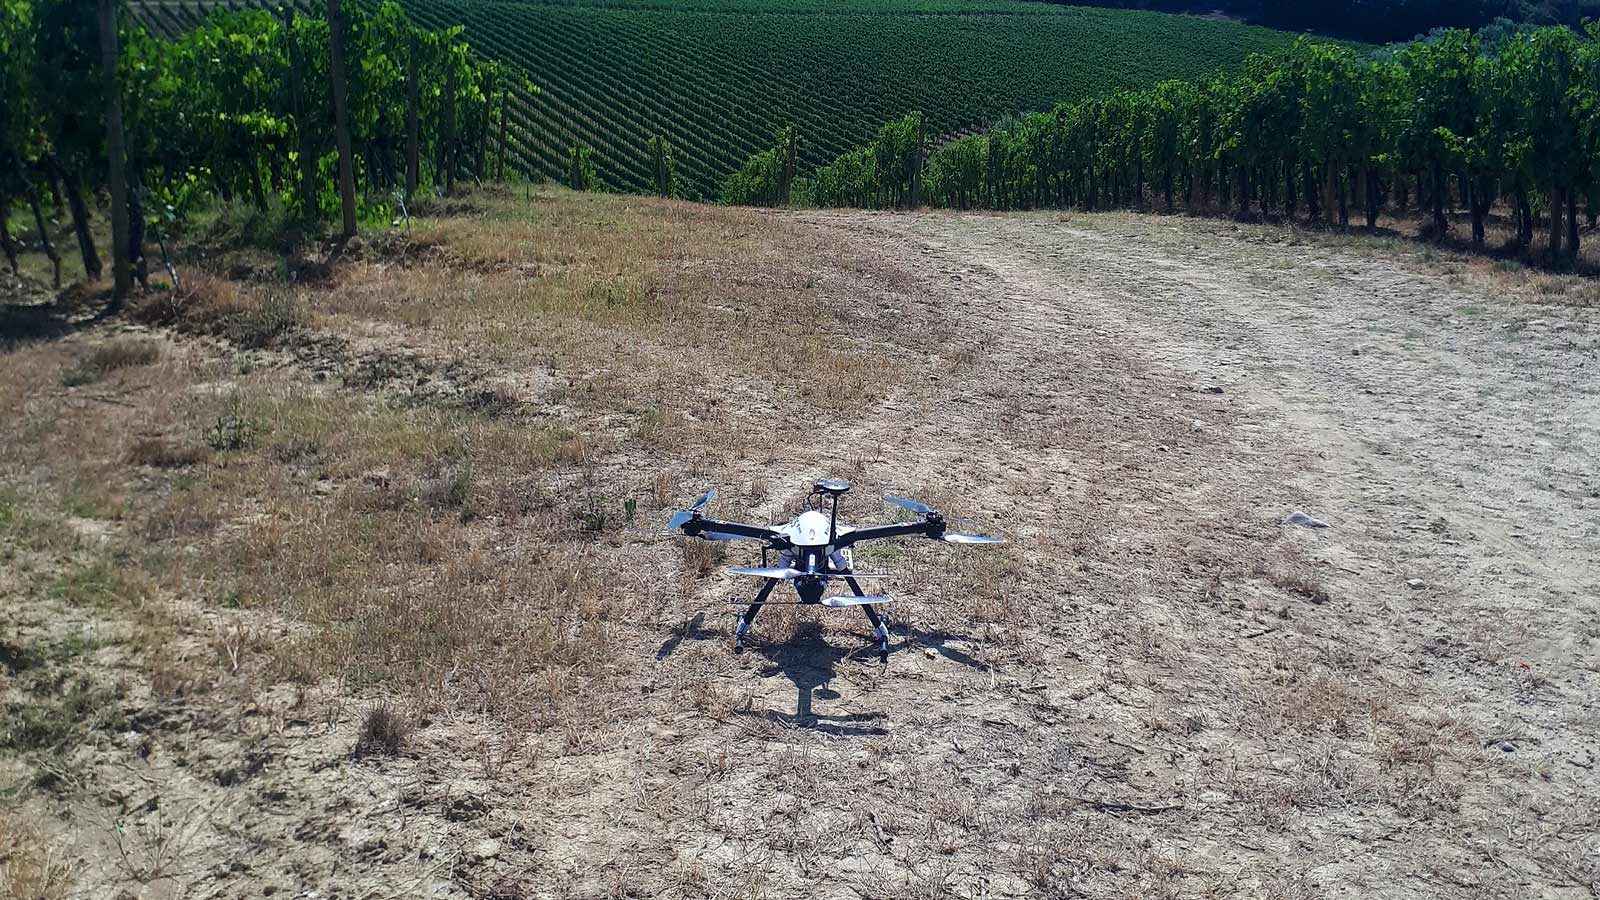 Chianti Classico winery with the hexacopter Zephyr EXOS ready to fly